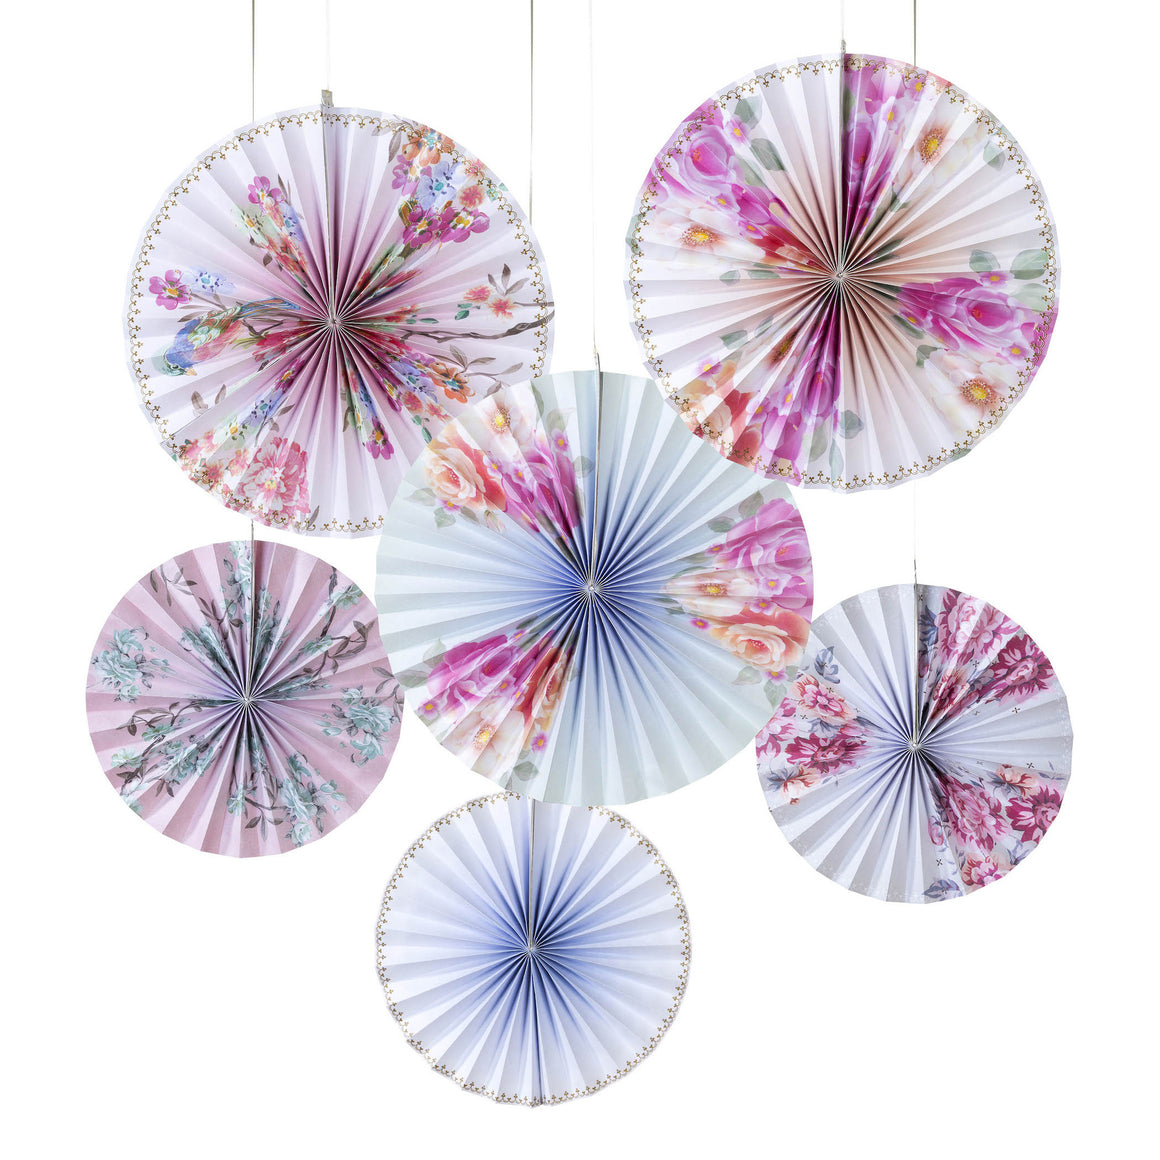 Romantic 6 Pinwheel Decorations